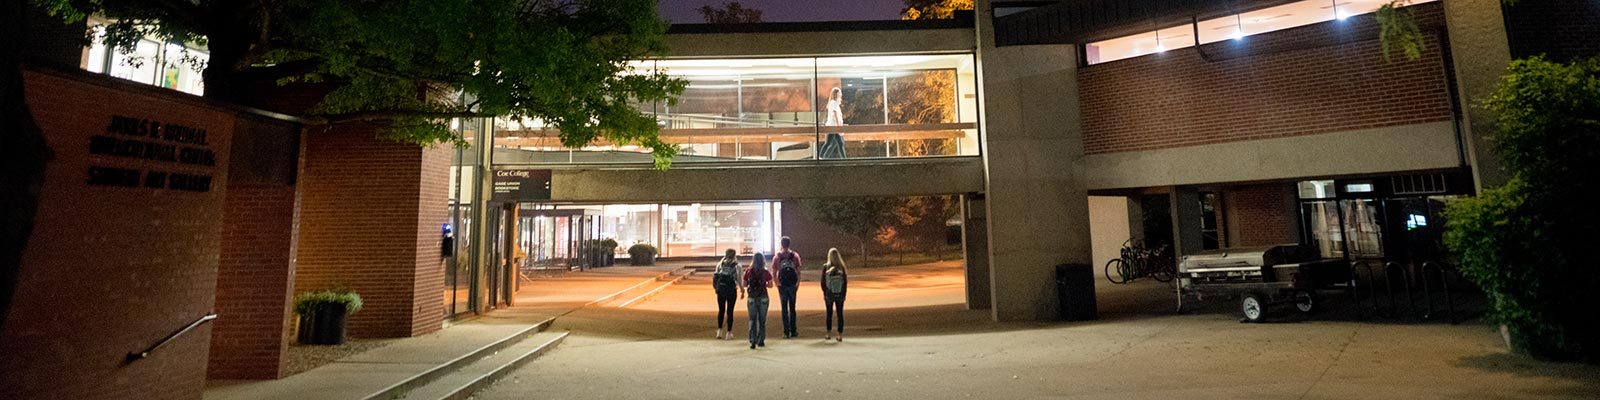 Students walking outside of Gage Memorial Union